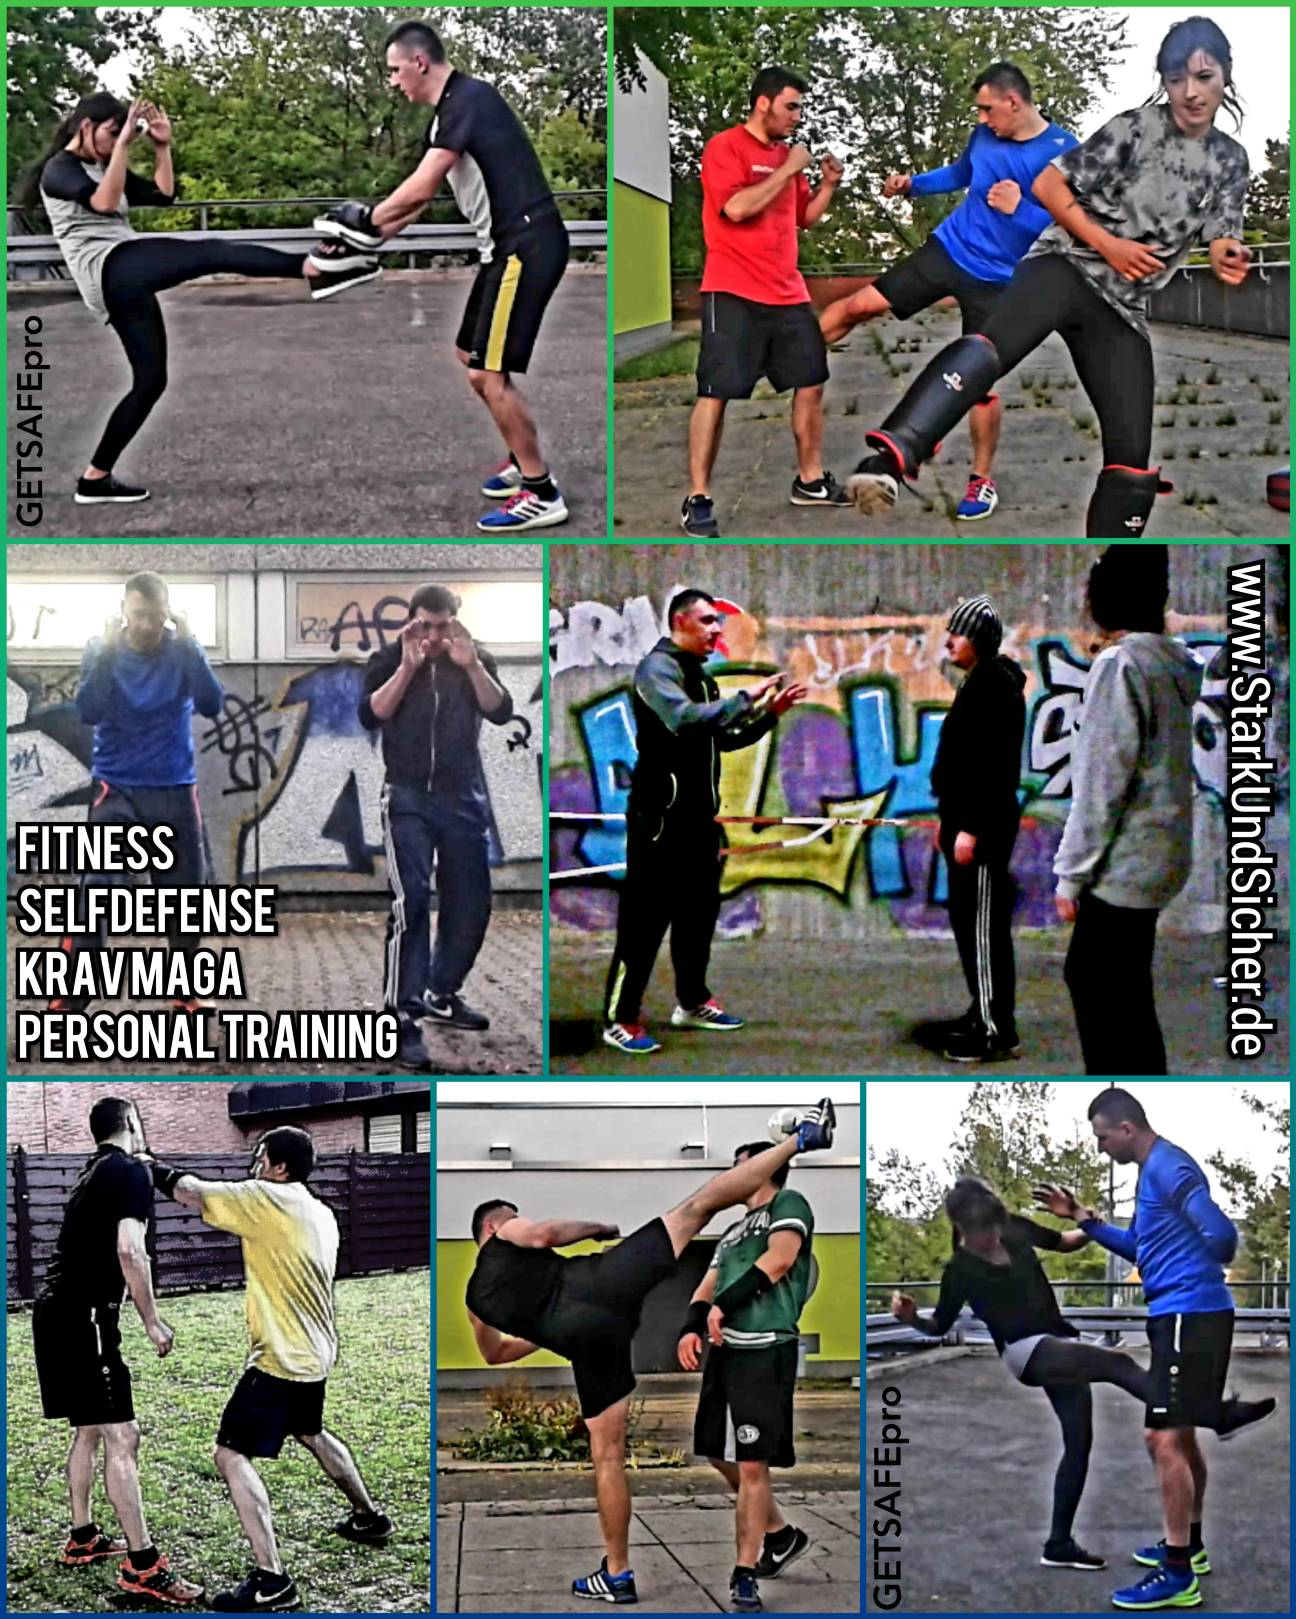 GETSAFEpro Krav Maga Wiesbaden Fitness Selbstverteidigung Training Outdoor (8)